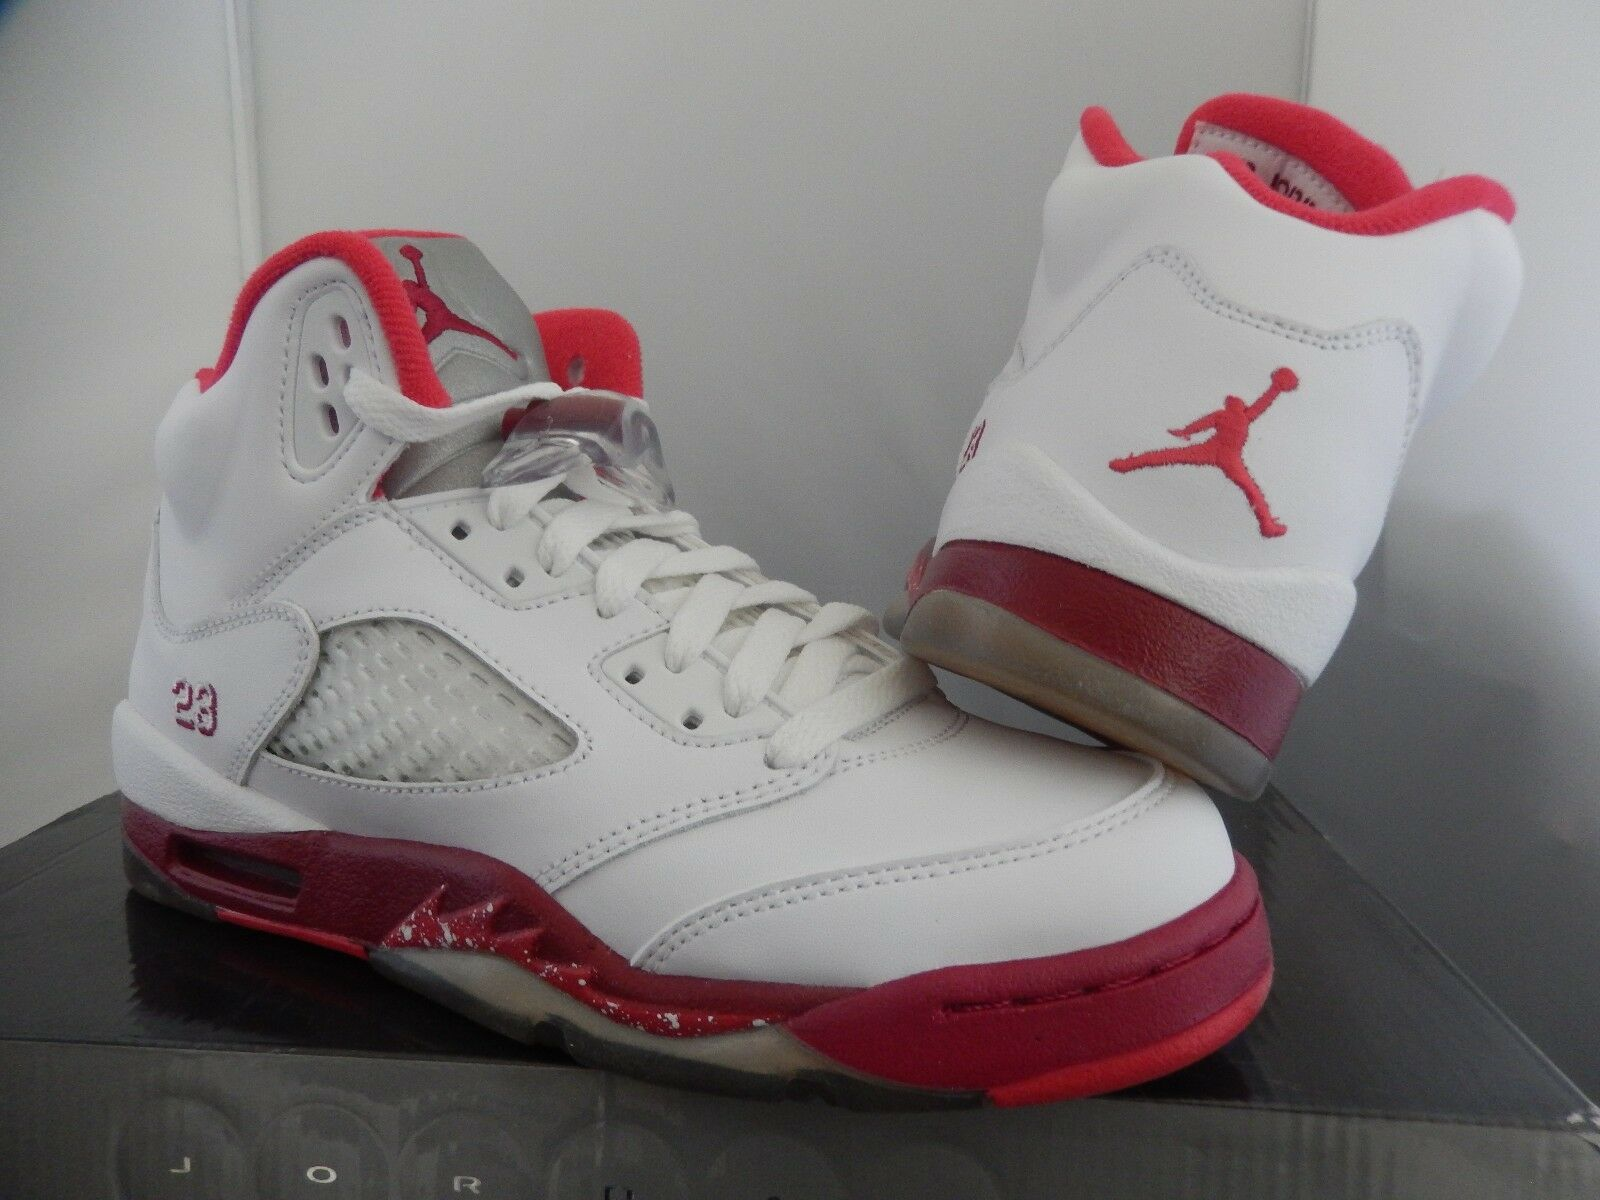 GIRLS AIR AIR AIR JORDAN 5 RETRO (GS) WHITE SZ 4Y -WOMENS SZ 5.5 b72fb7